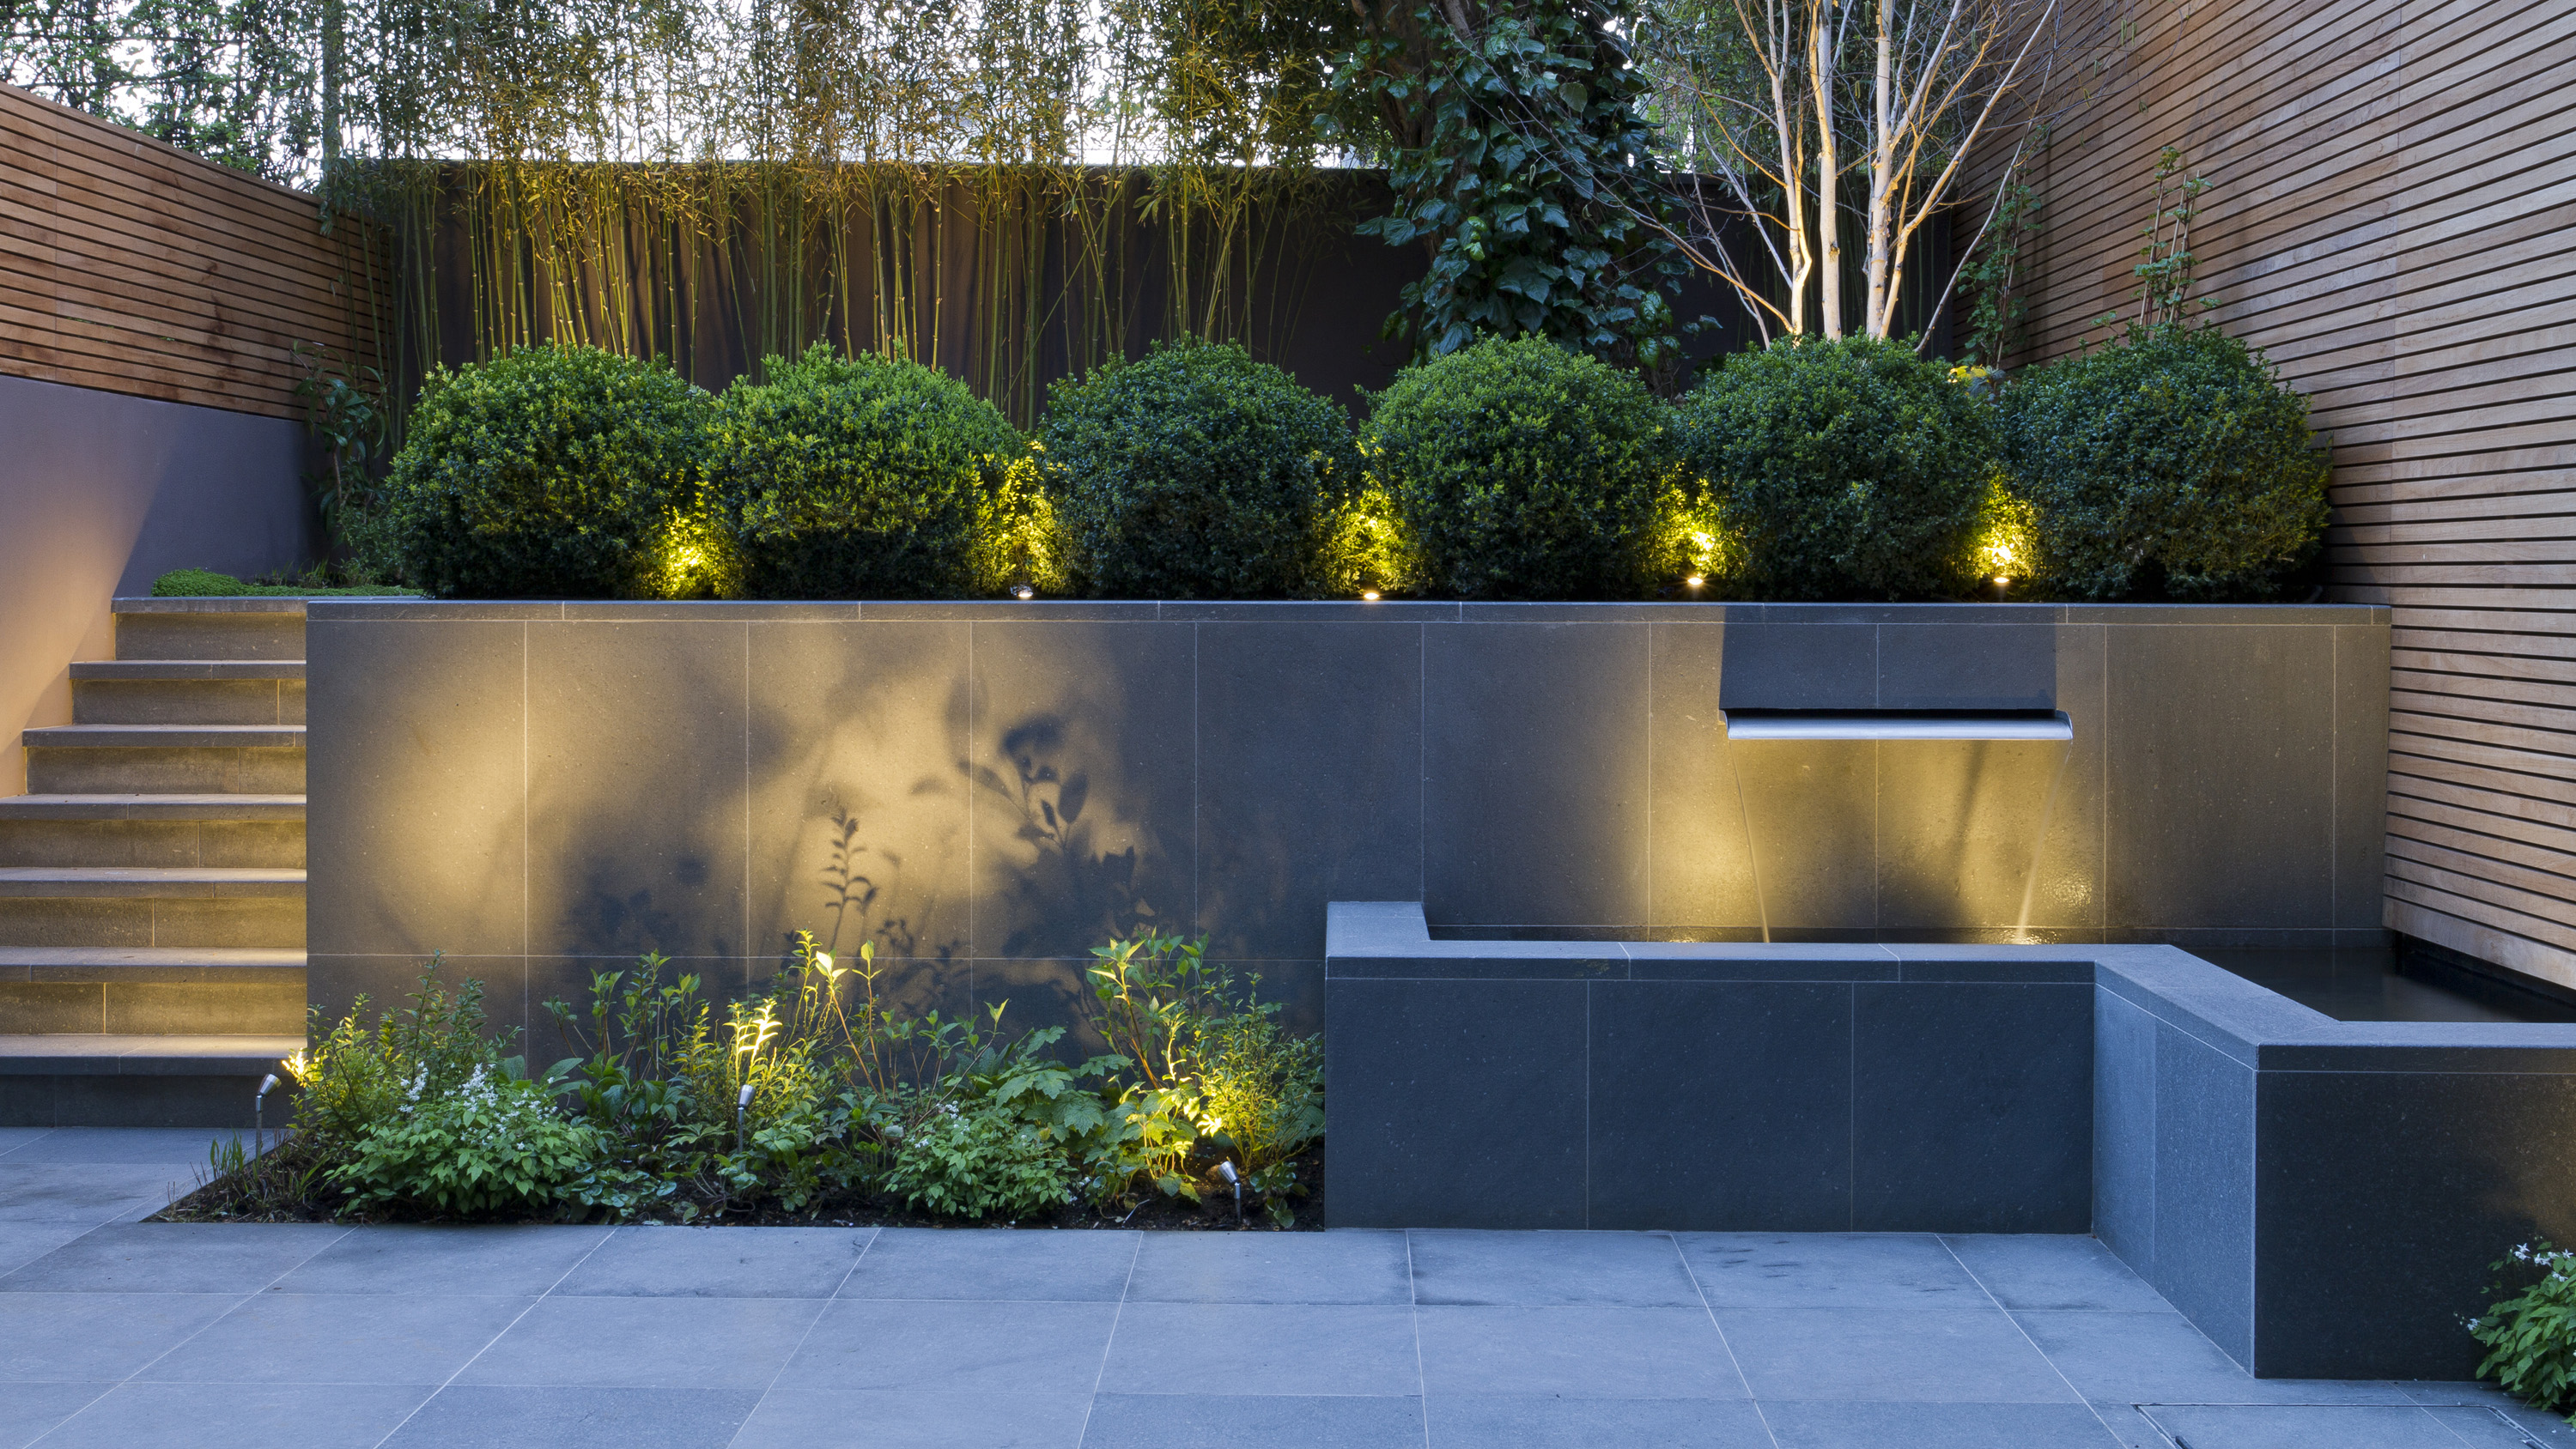 Garden Wall Ideas 15 Smart Ways To Get More From Your Outside Space Gardeningetc